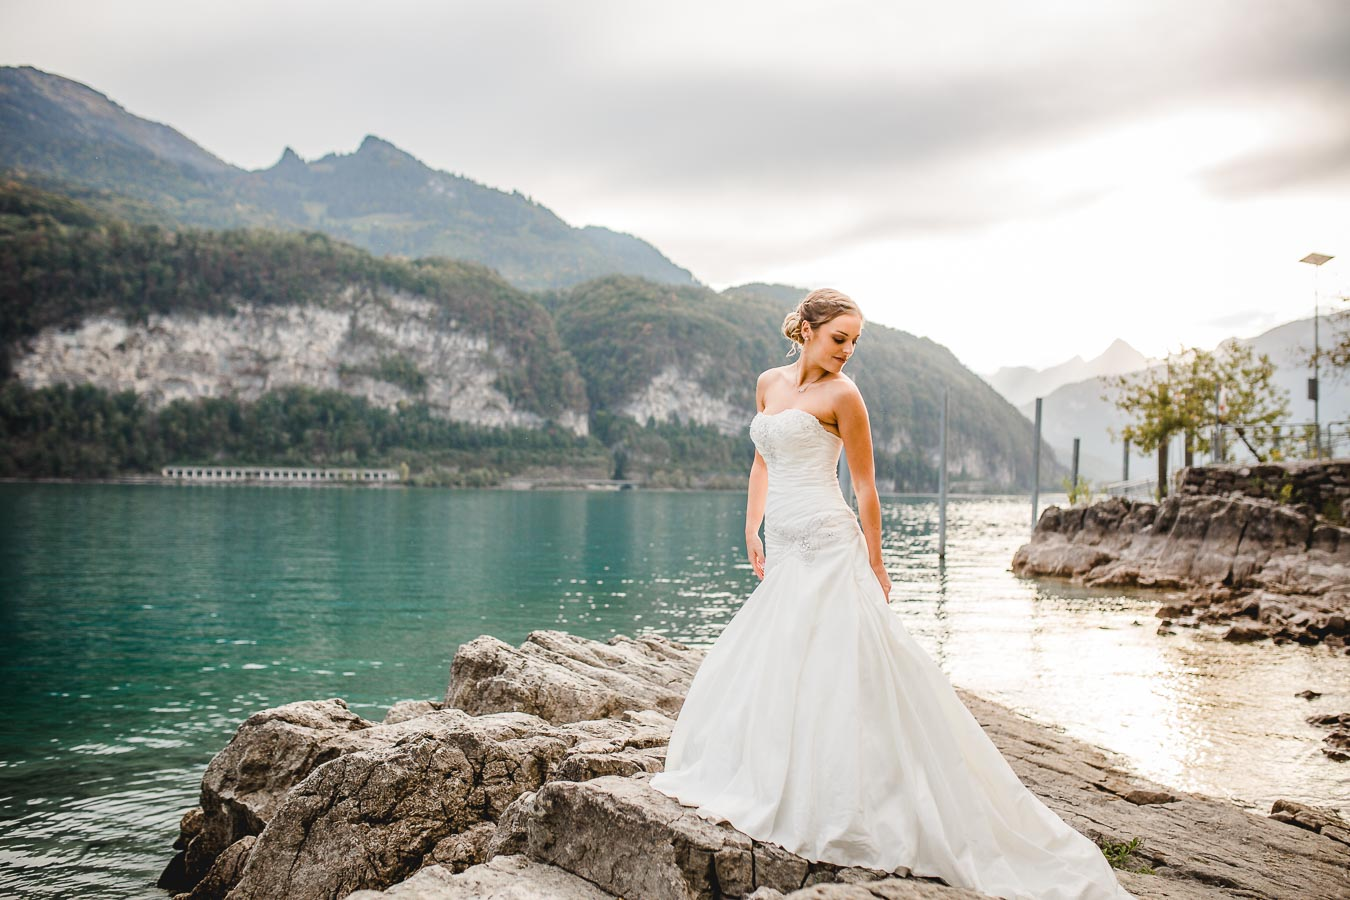 , After-Wedding-Shooting am Walensee